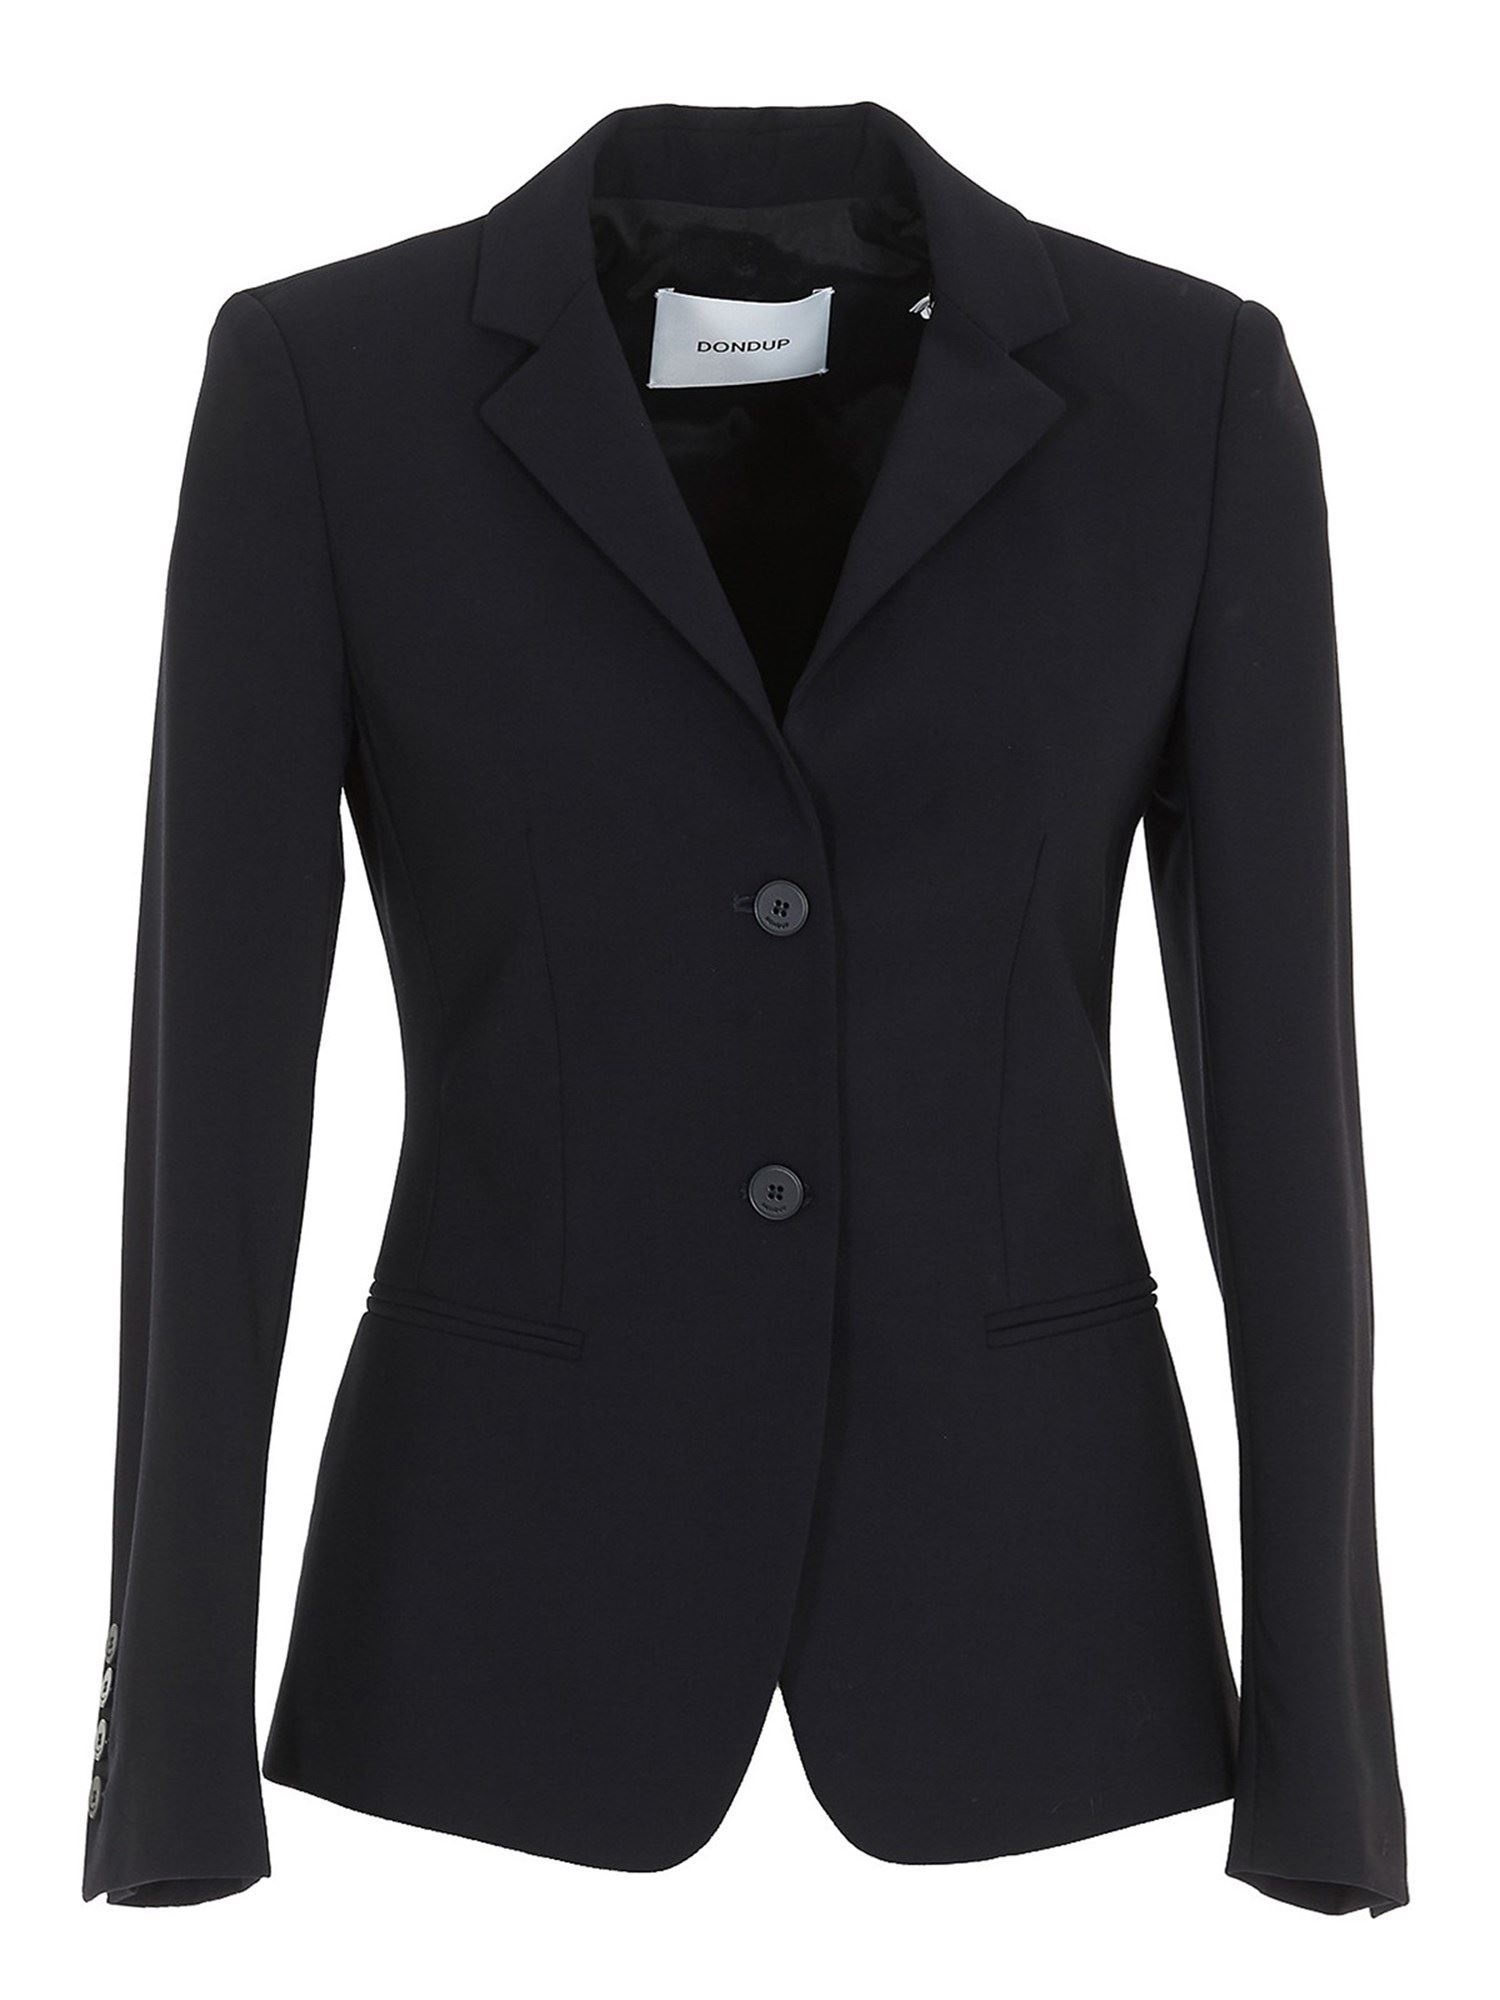 Dondup COTTON BLEND BLAZER